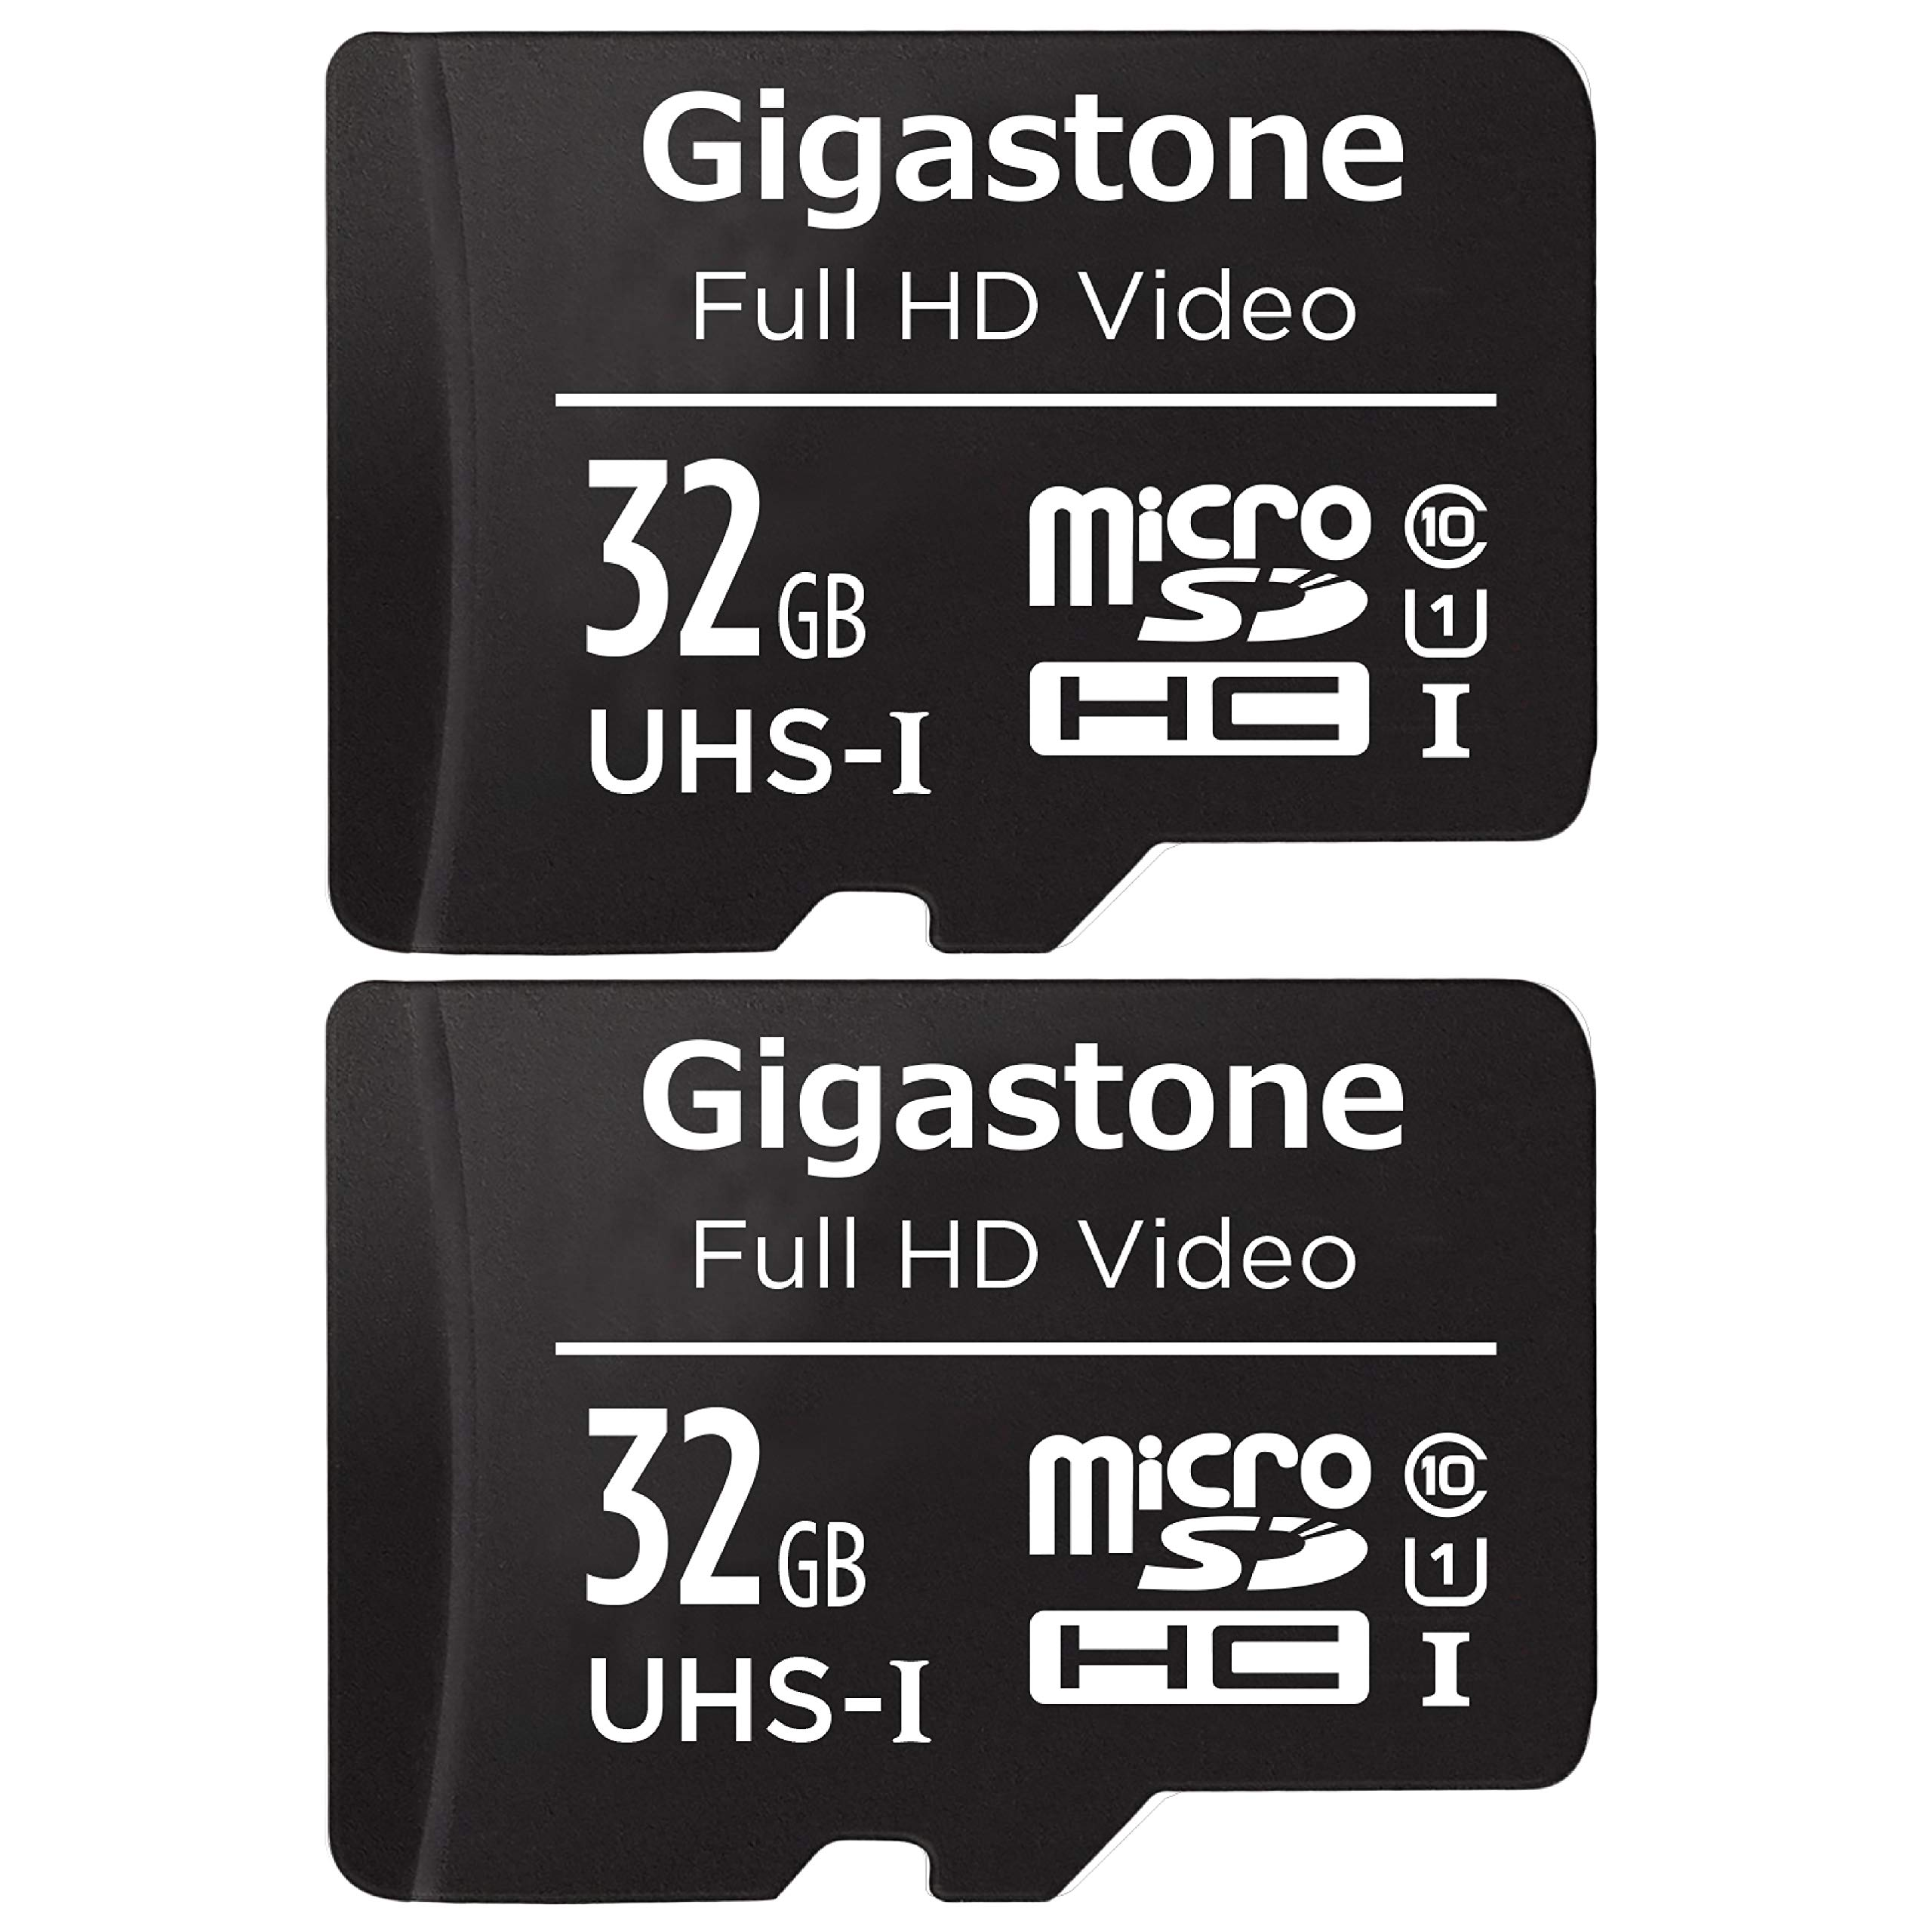 Gigastone 32GB 2-Pack Micro SD Card with Adapter , U1 C10 Class 10, Full HD available, Micro SDHC UHS-I Memory Card - Black